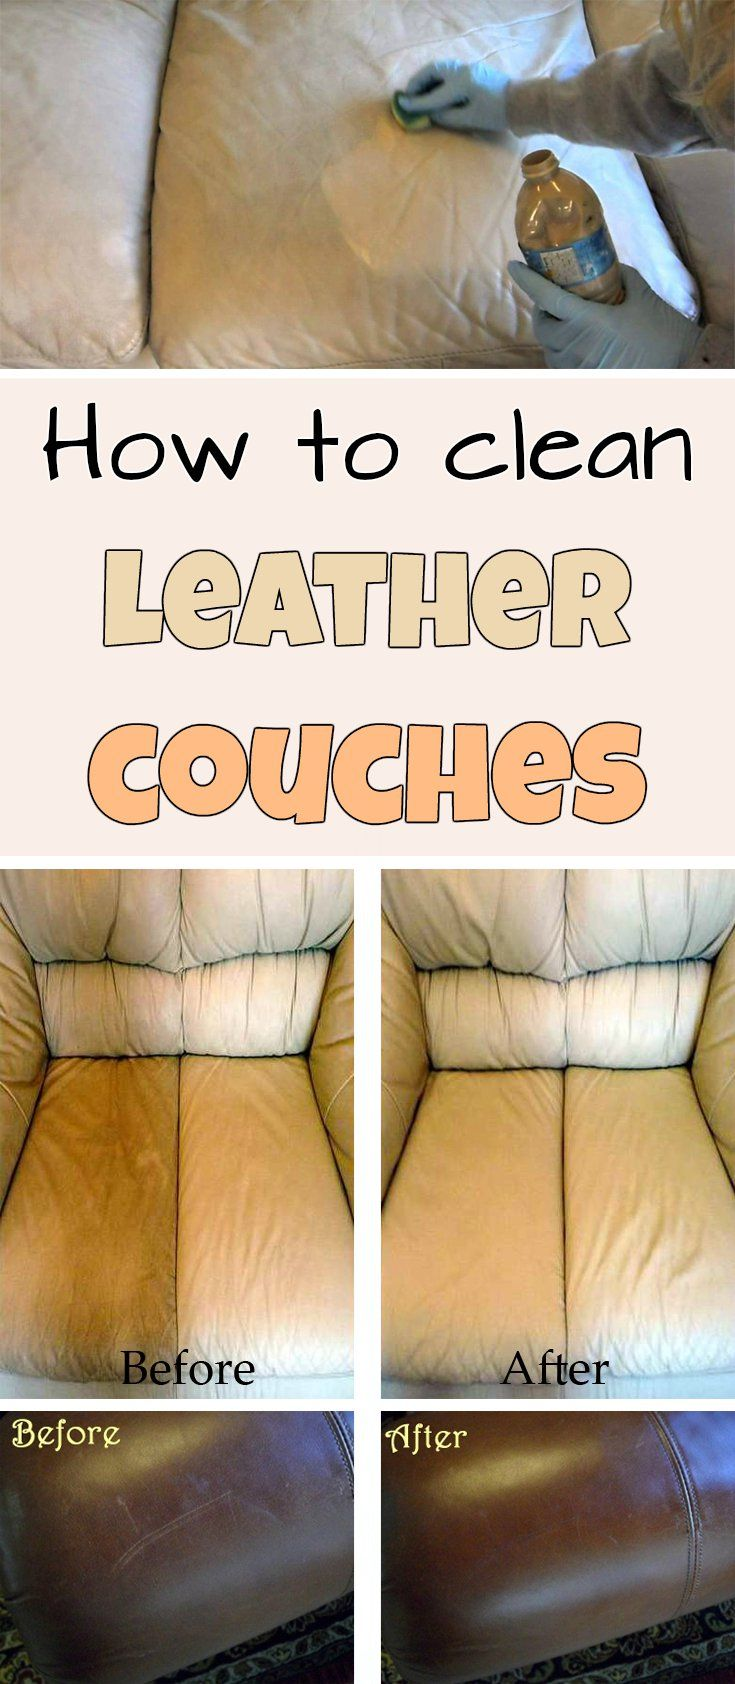 How To Clean Leather Couches Mycleaningsolutions Com Cleaning Leather Couch Cleaning Hacks Leather Couch